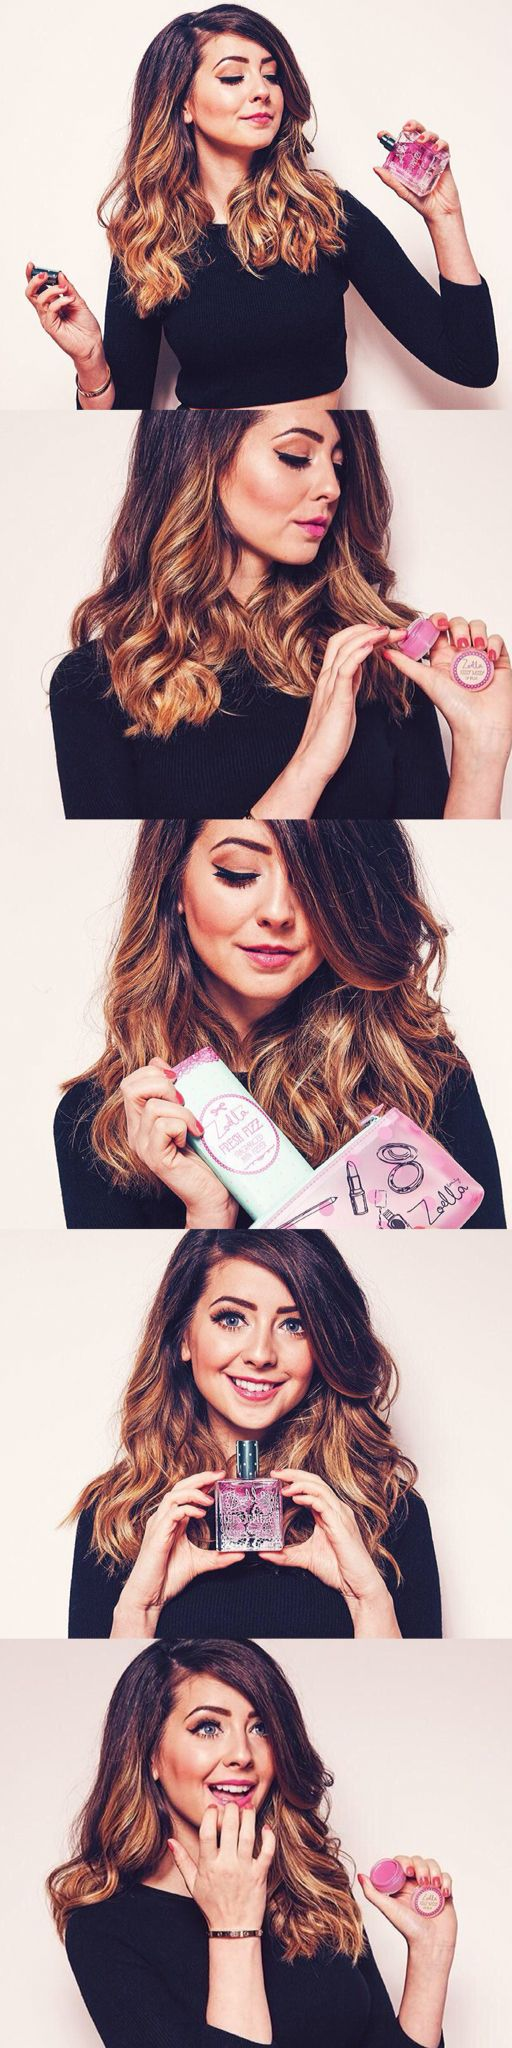 zoe sugg / zoella - photo shoot for new zoella beauty tutti fruity collection  Getting my fair cut kinda like Zoe!